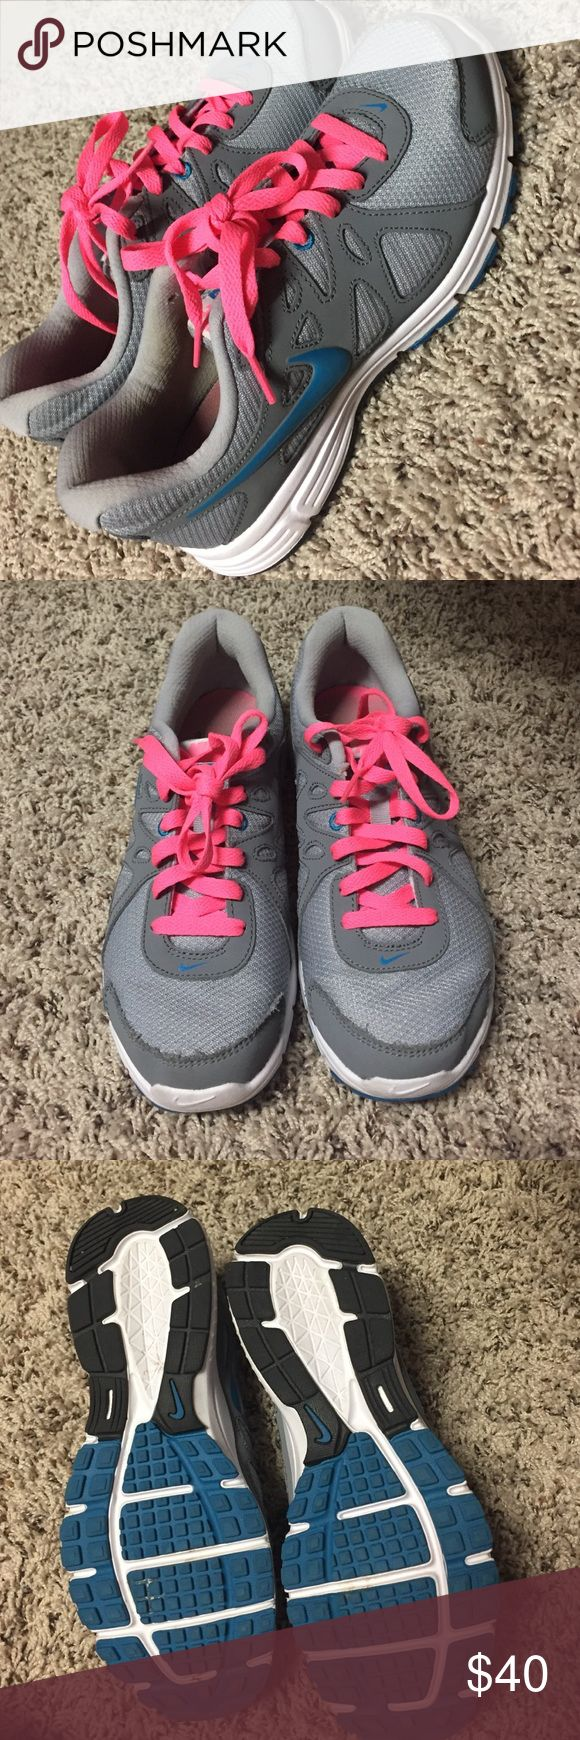 NIKE revolution 2 shoes 👟👟 NIKE revolution 2 shoes-worn a few times. Nike Shoes Athletic Shoes